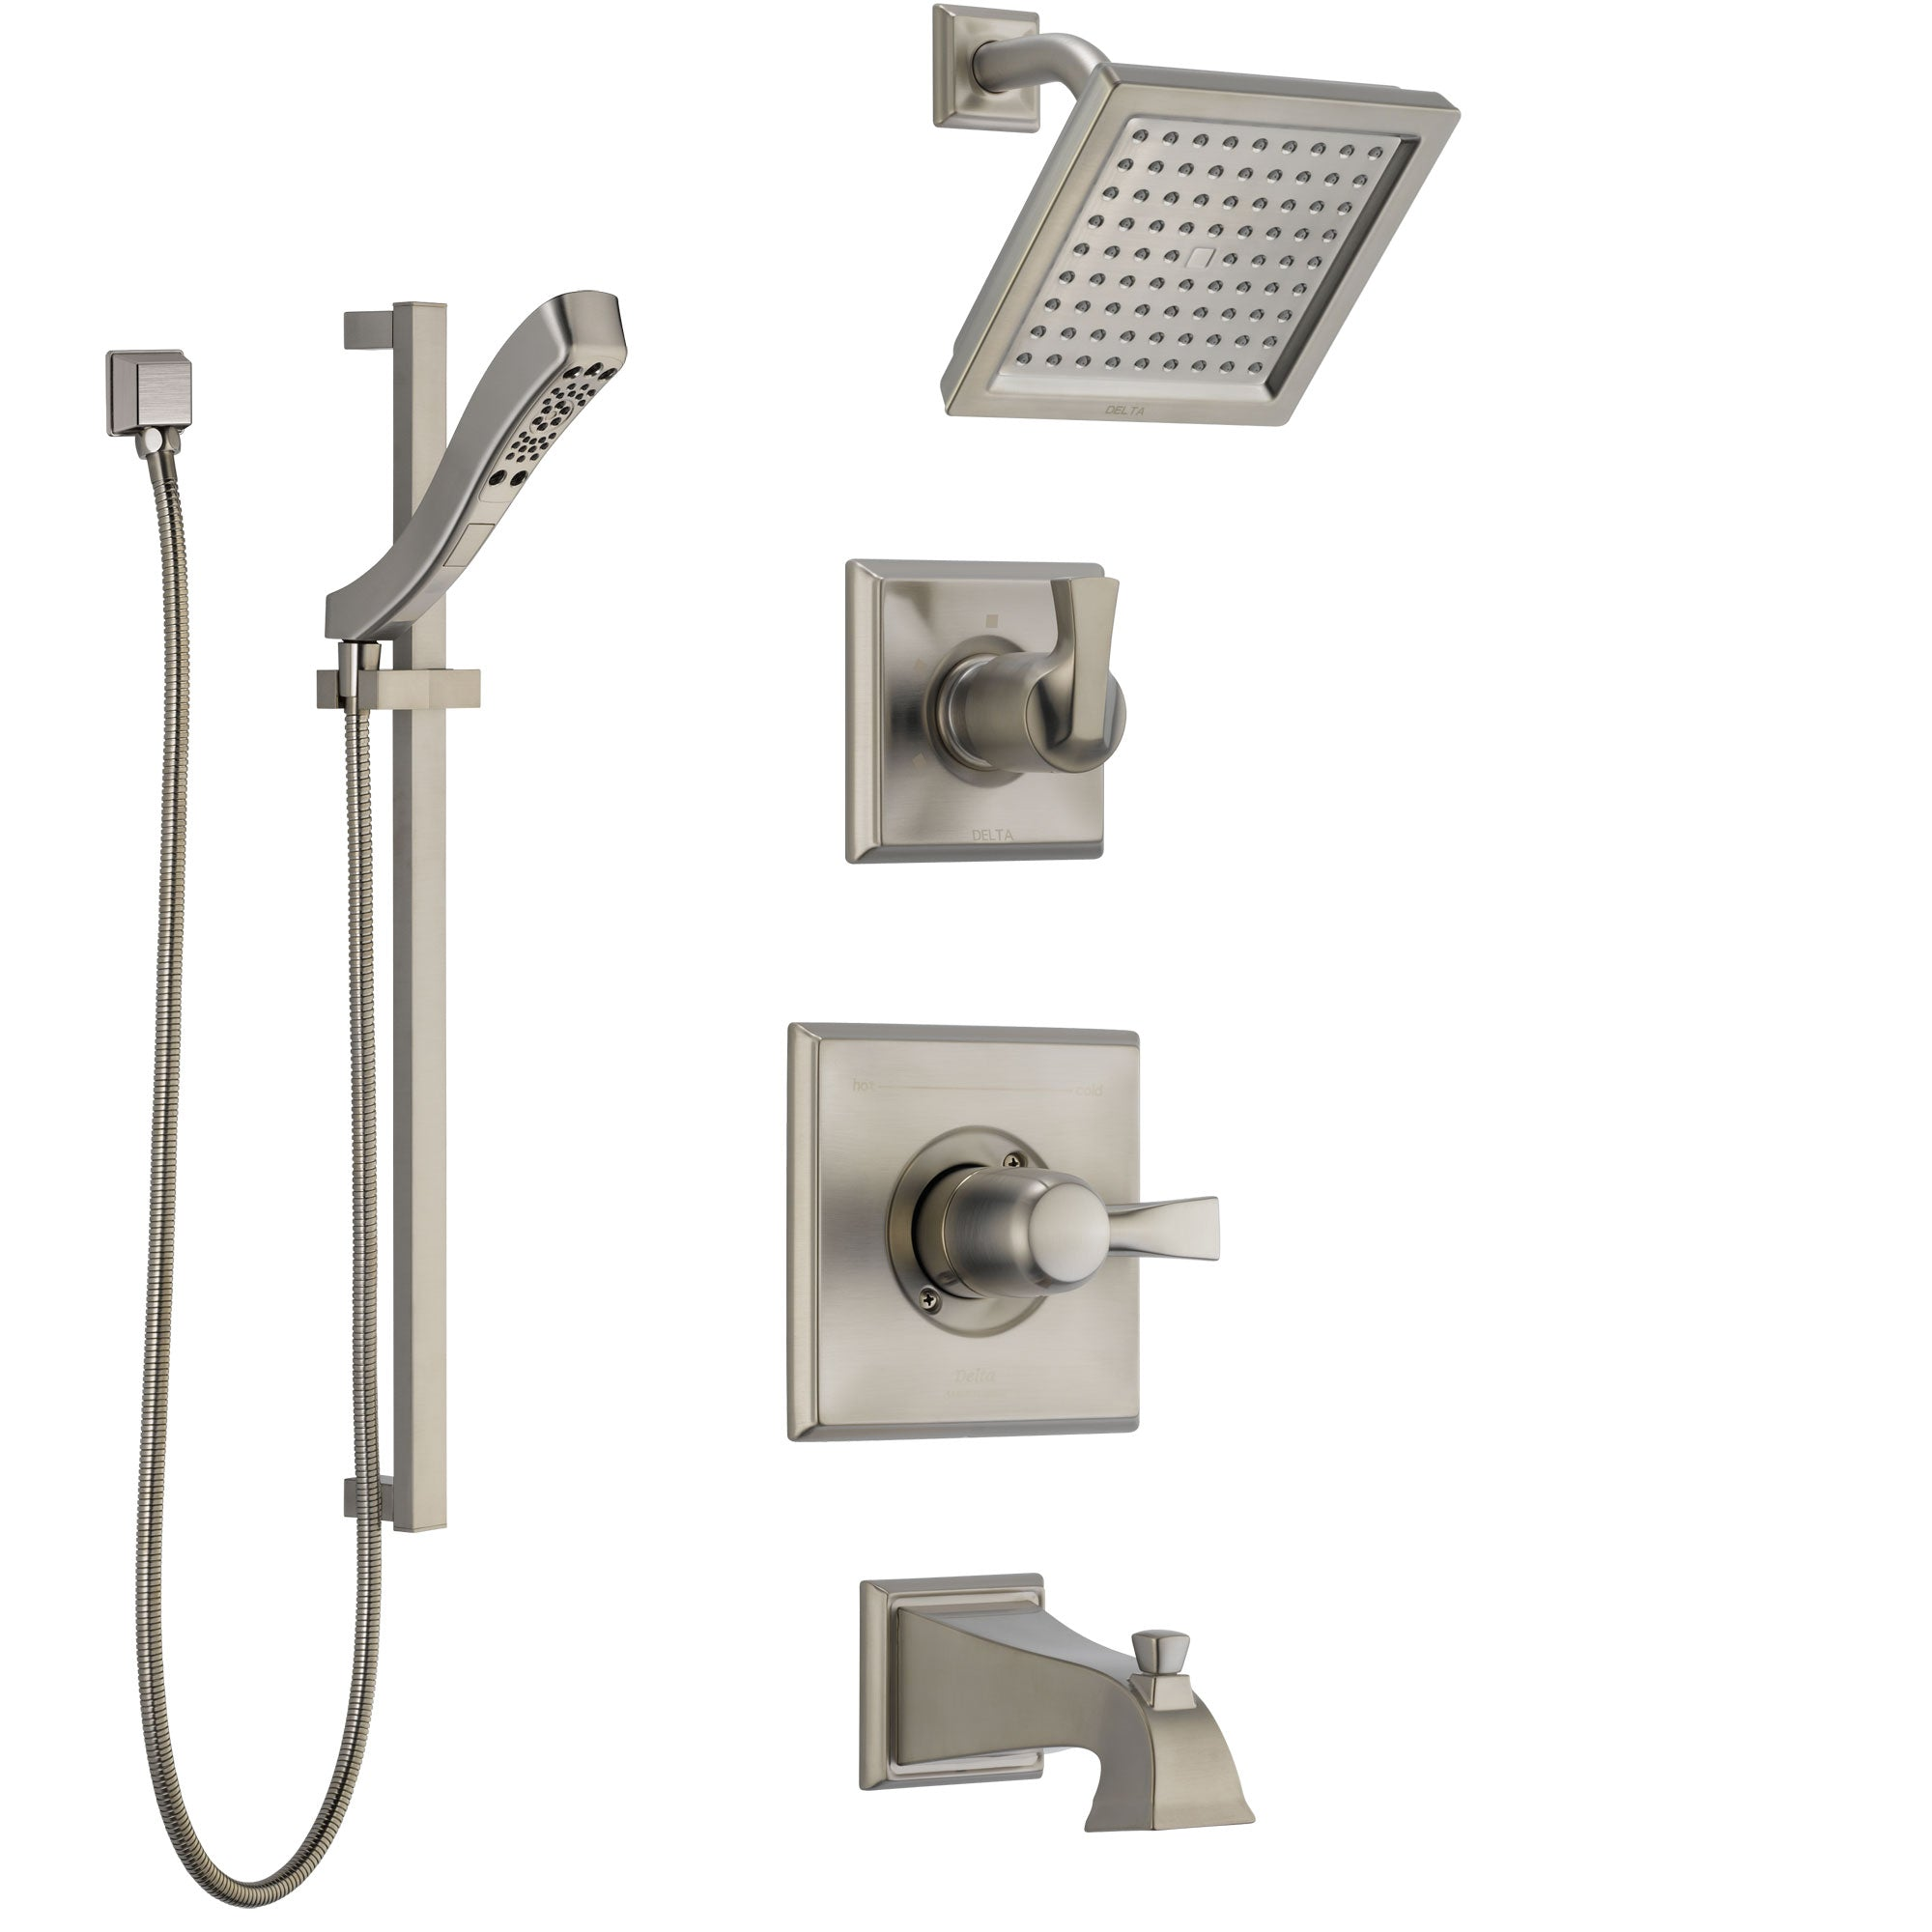 Delta Dryden Stainless Steel Finish Tub and Shower System with Control Handle, Diverter, Showerhead, and Hand Shower with Slidebar SS144511SS5